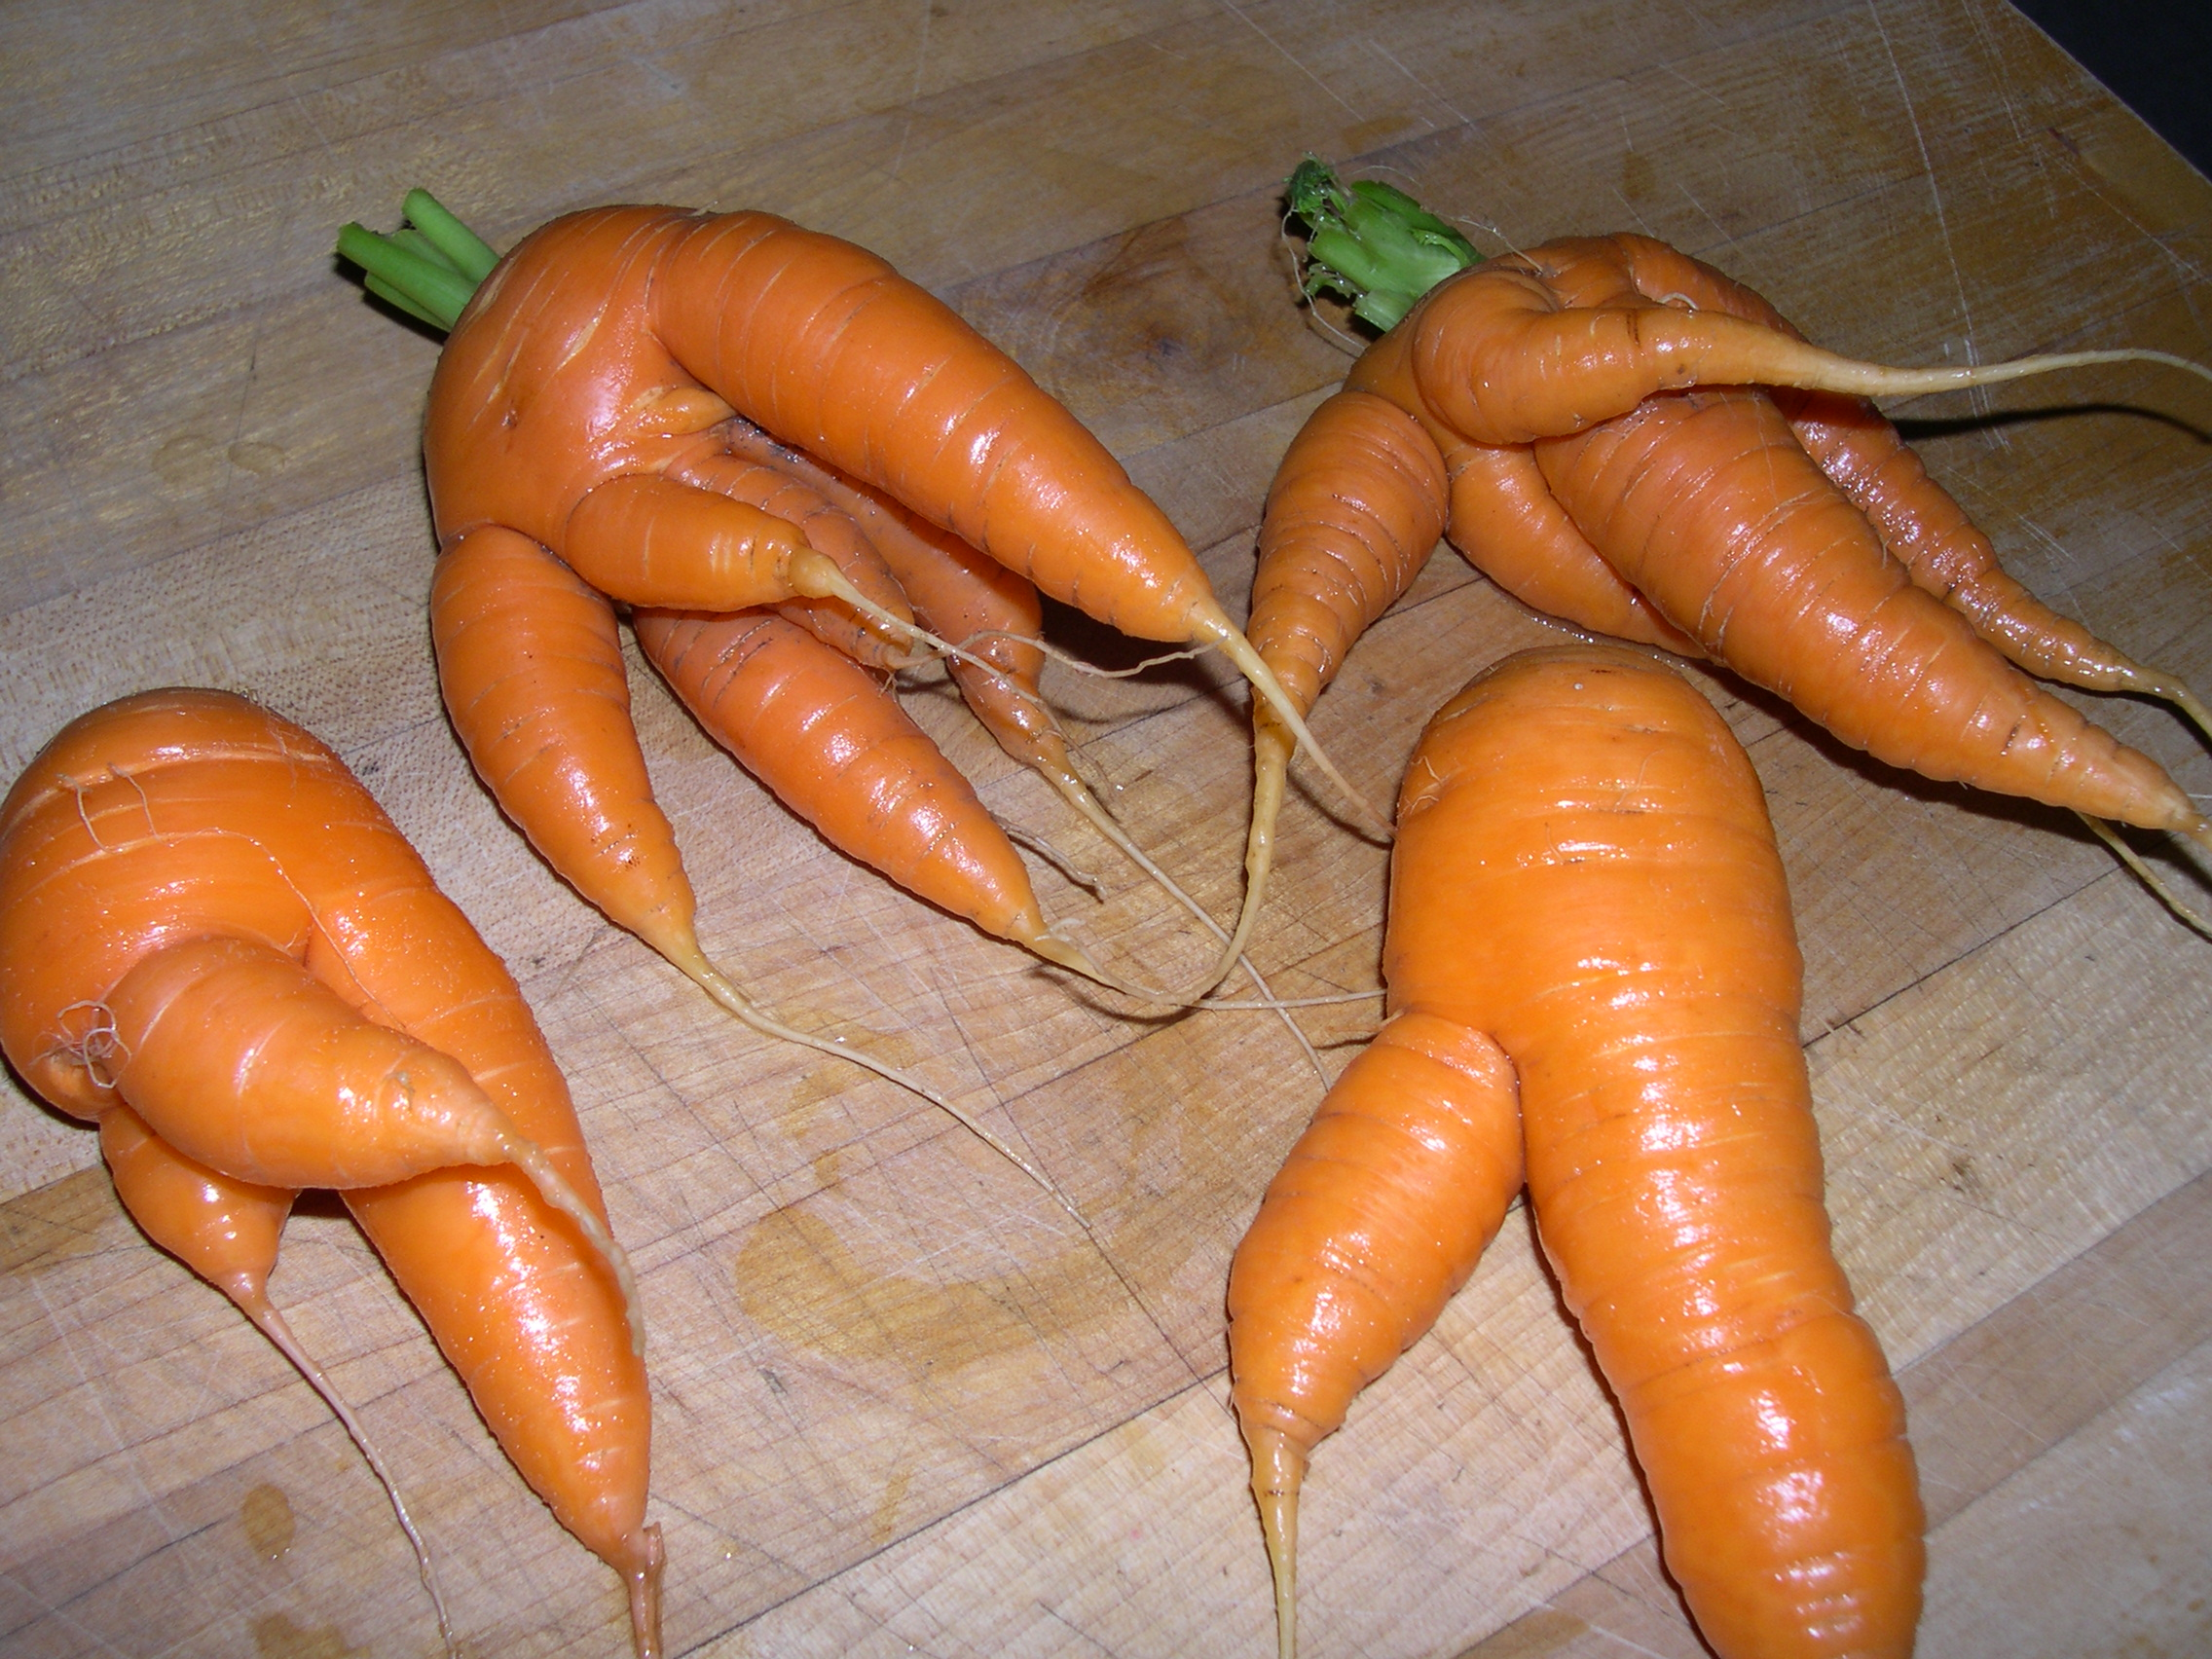 ... mutations. Here portrayed, wildly inaccurately, as mutant carrots